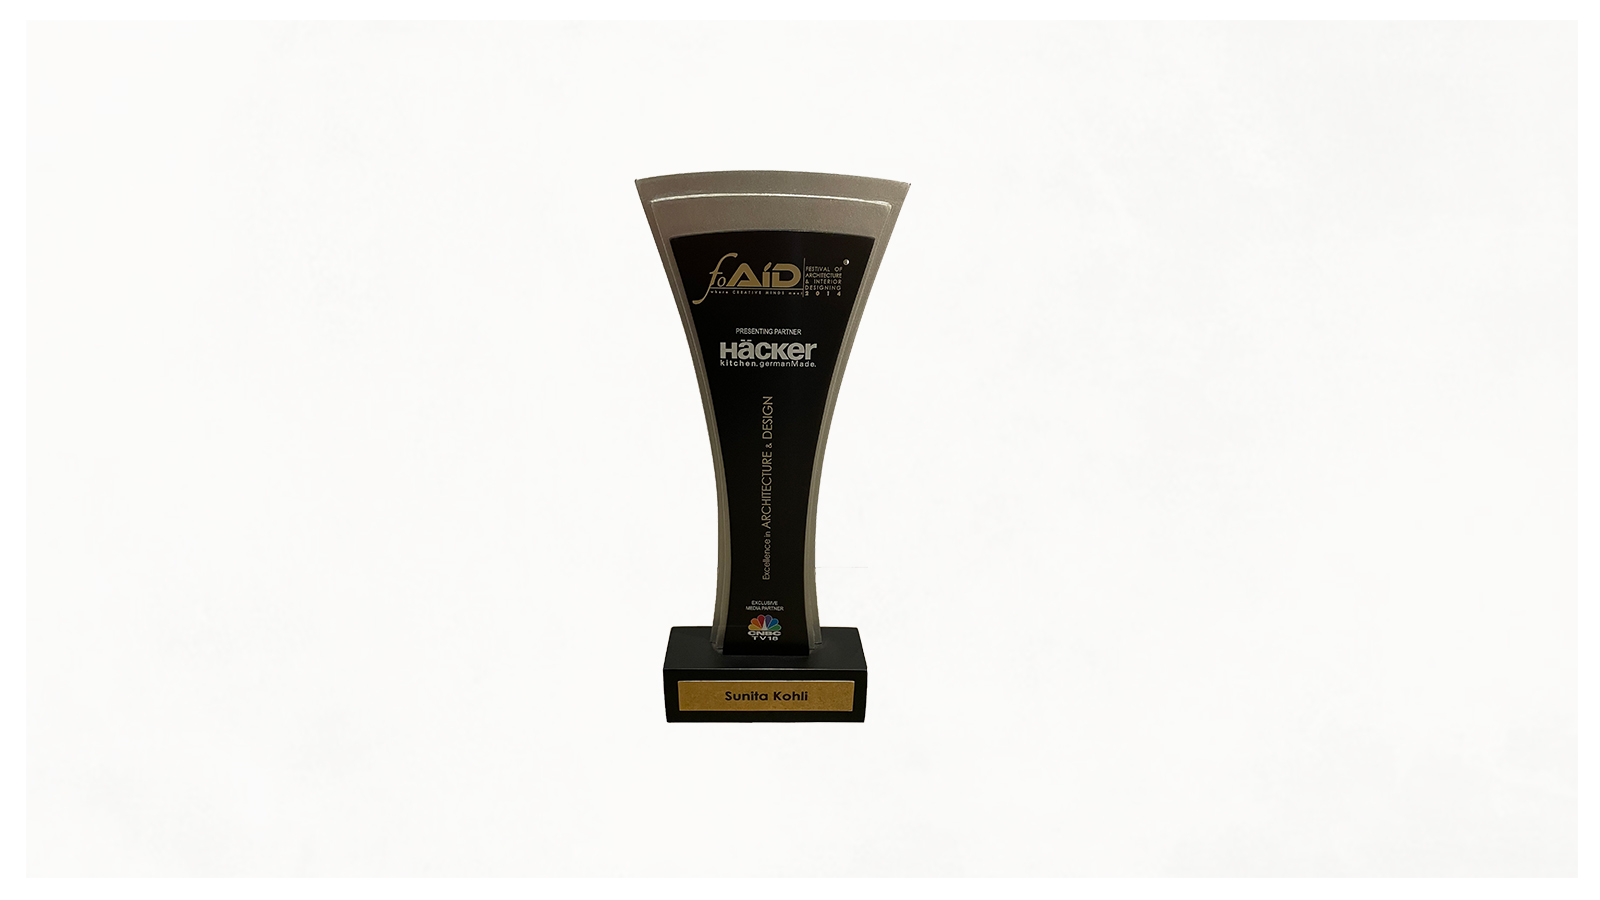 Festival of Architecture and Interior Designing Award 2014